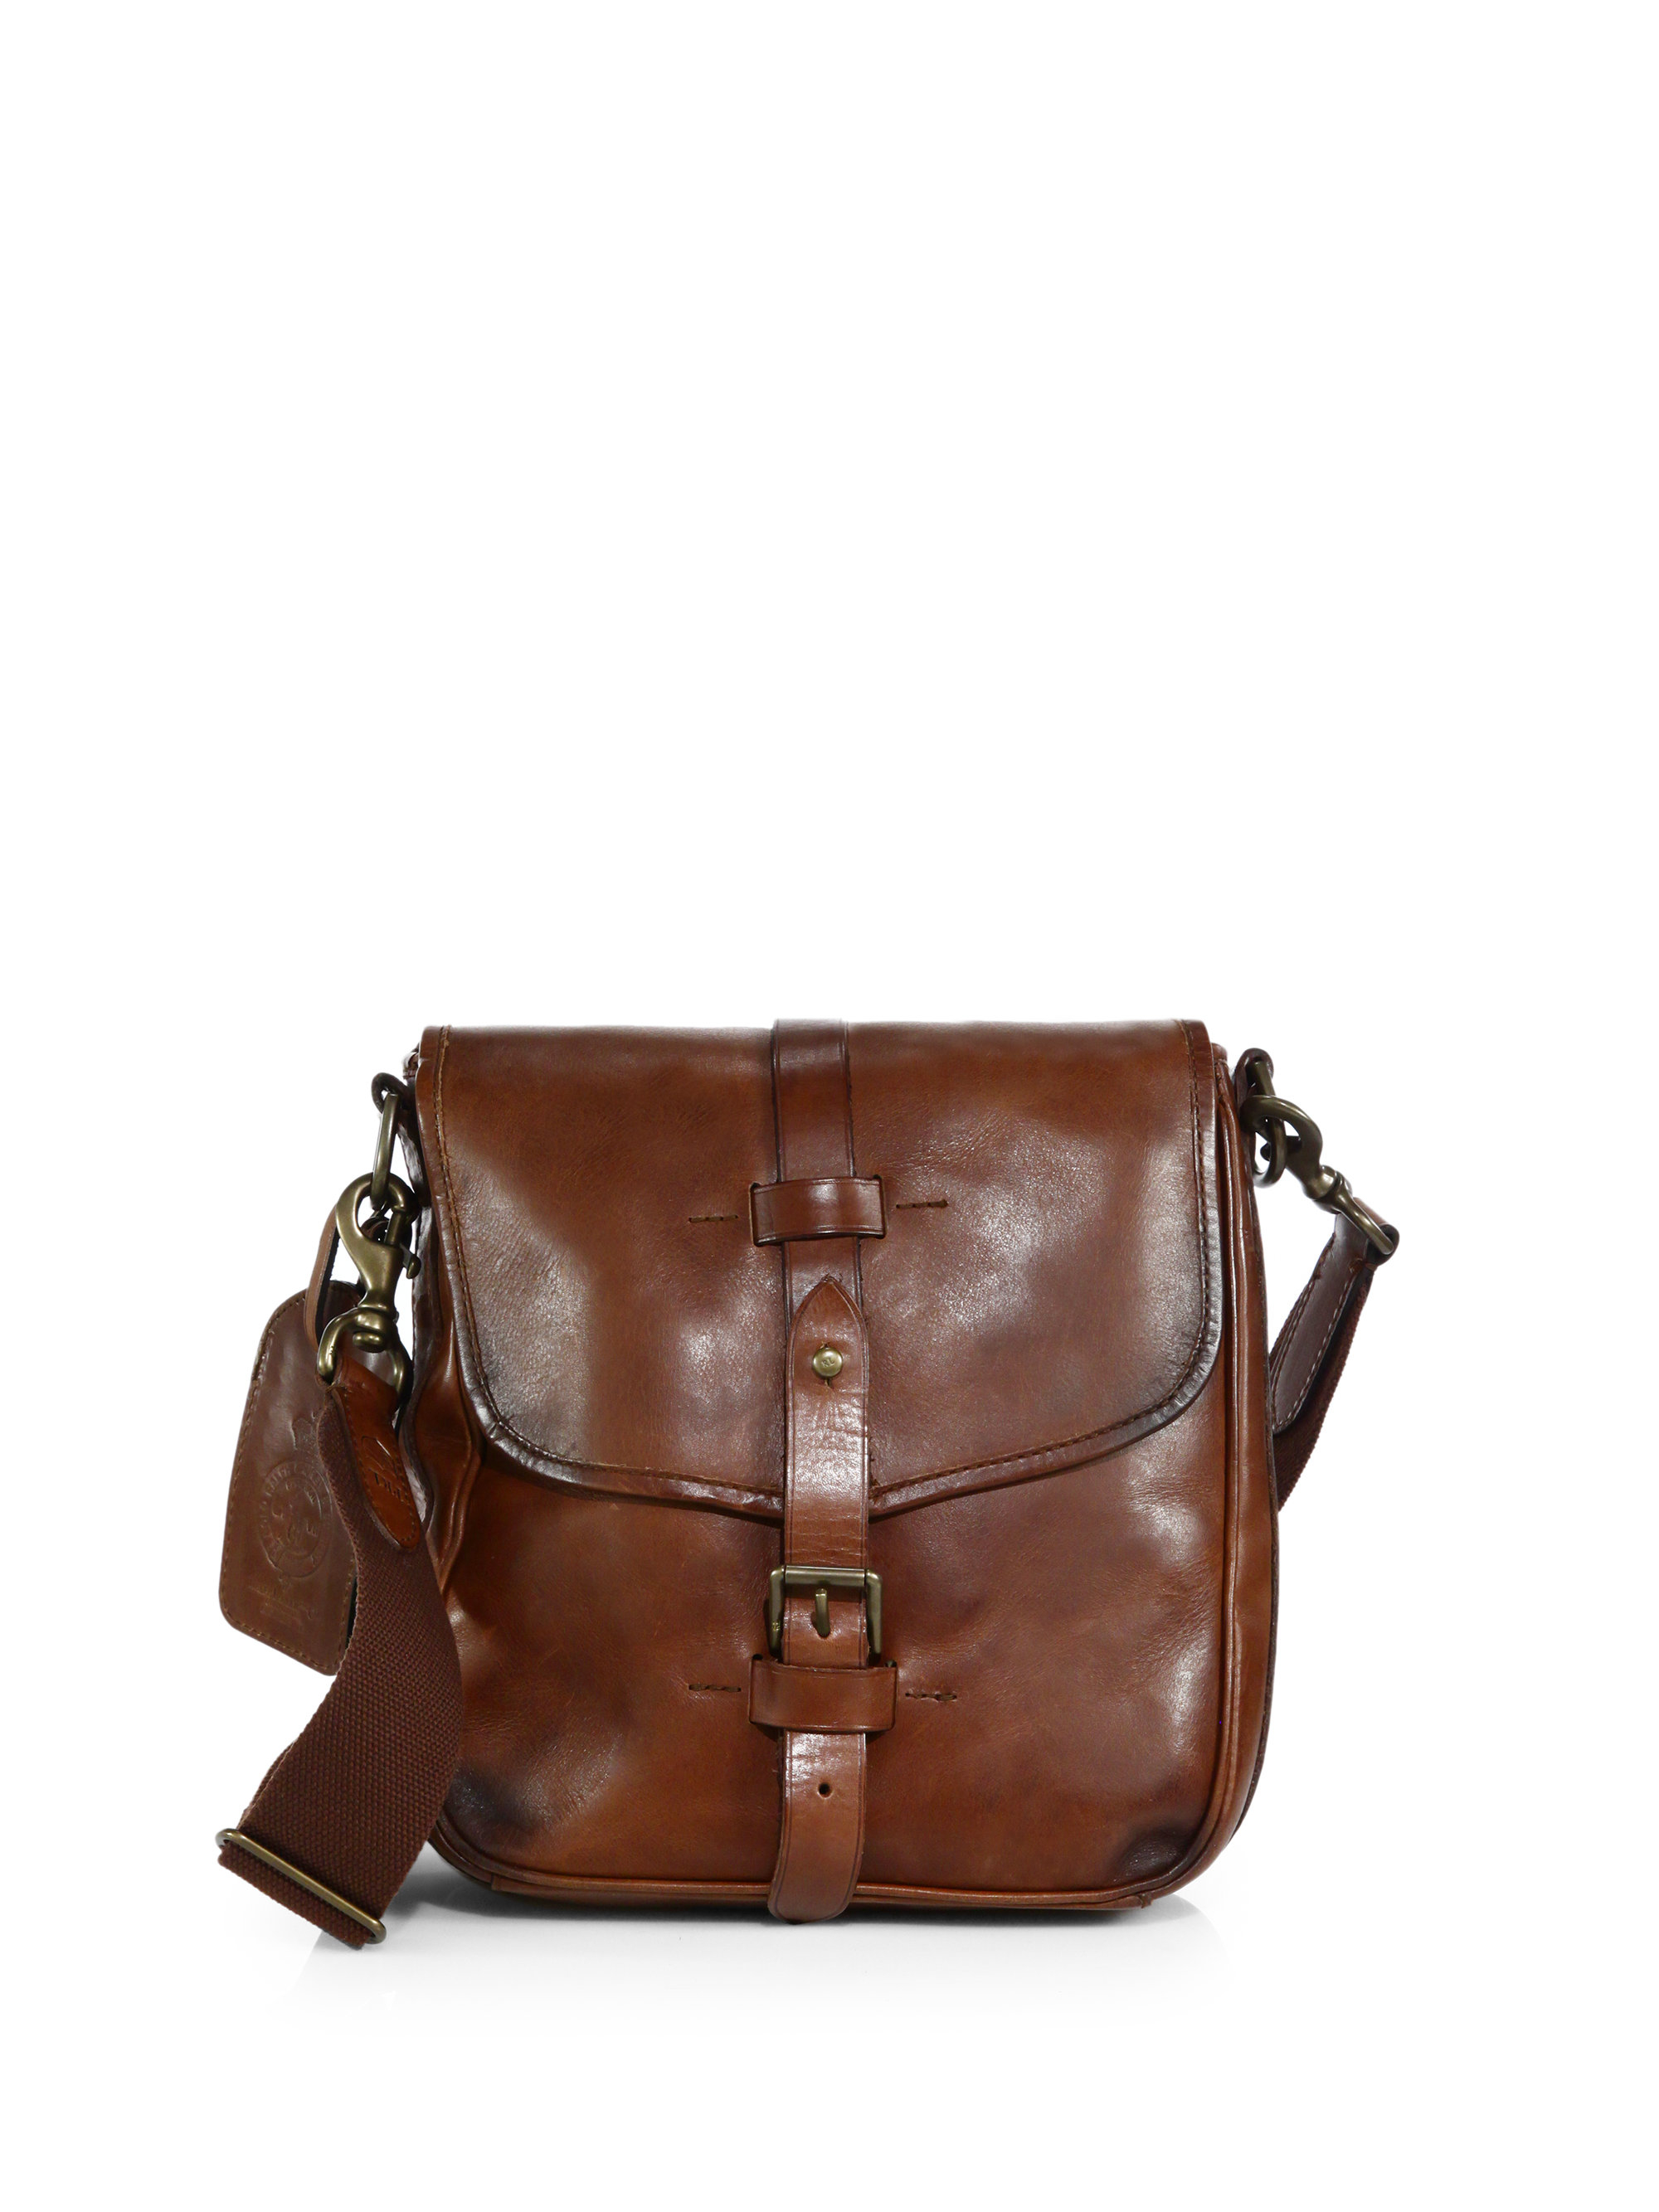 00943e713b Lyst - Polo Ralph Lauren Leather Camera Bag in Brown for Men